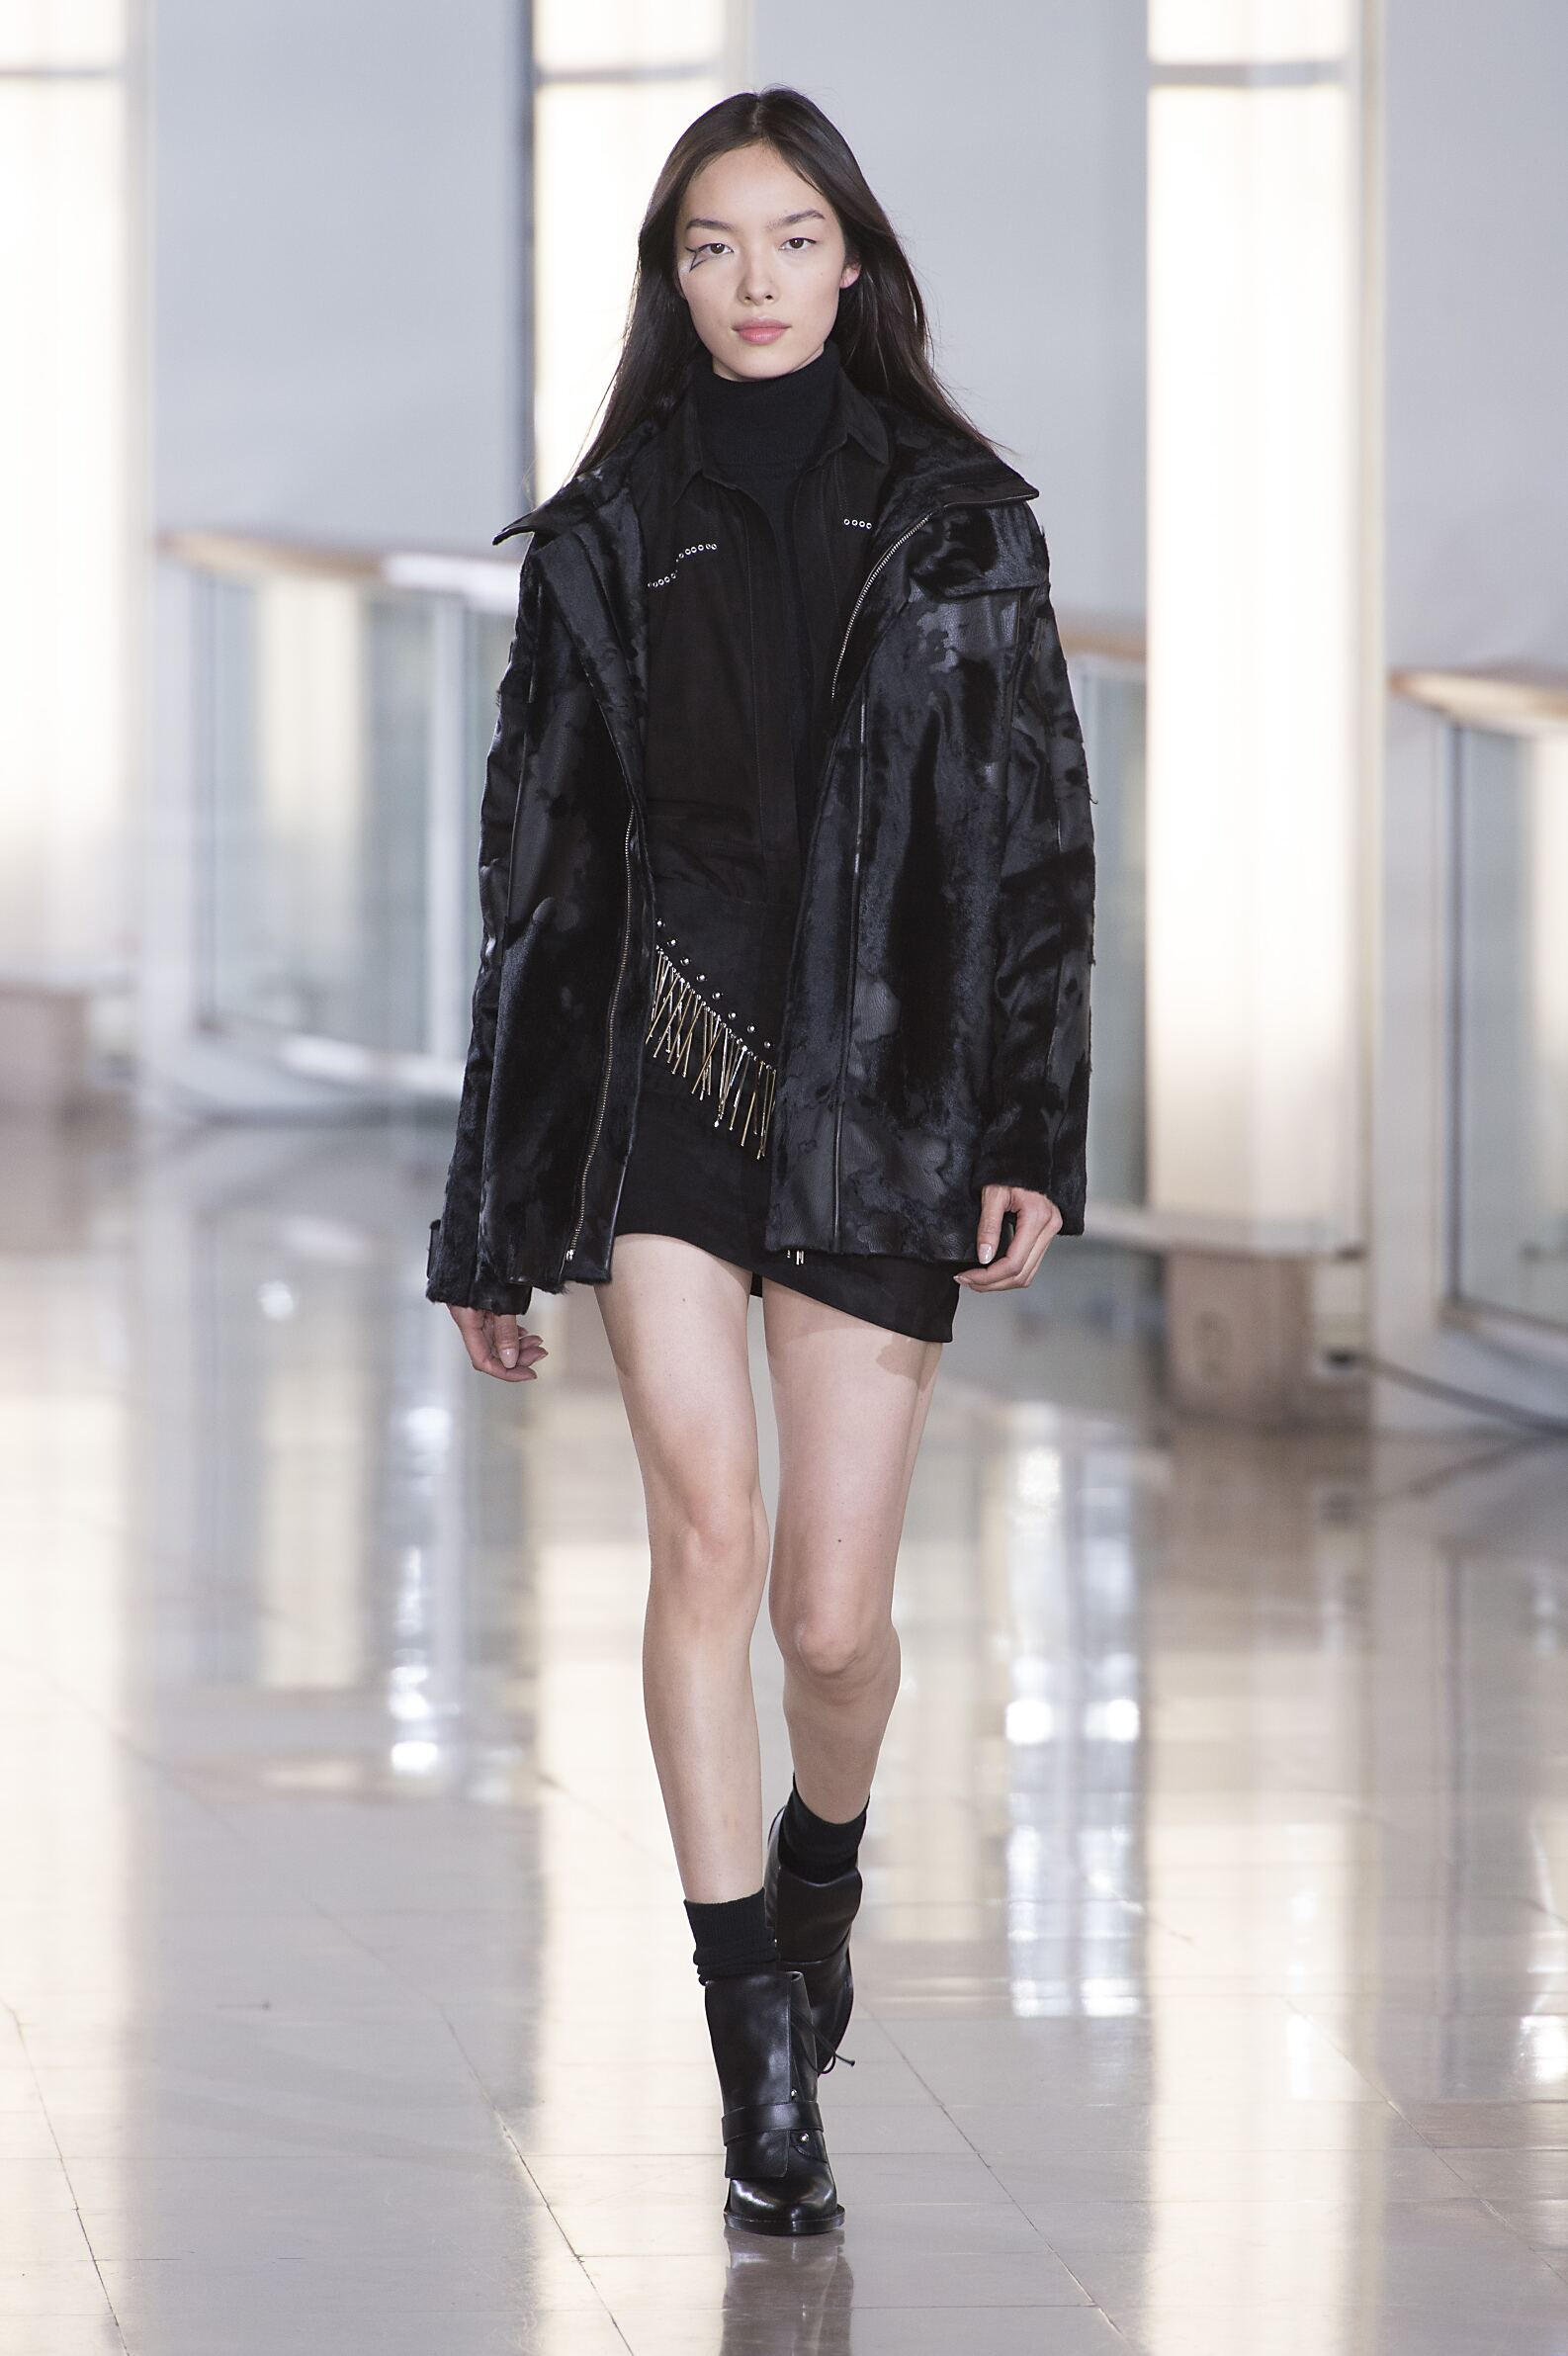 Catwalk Anthony Vaccarello Collection Fashion Show Winter 2015